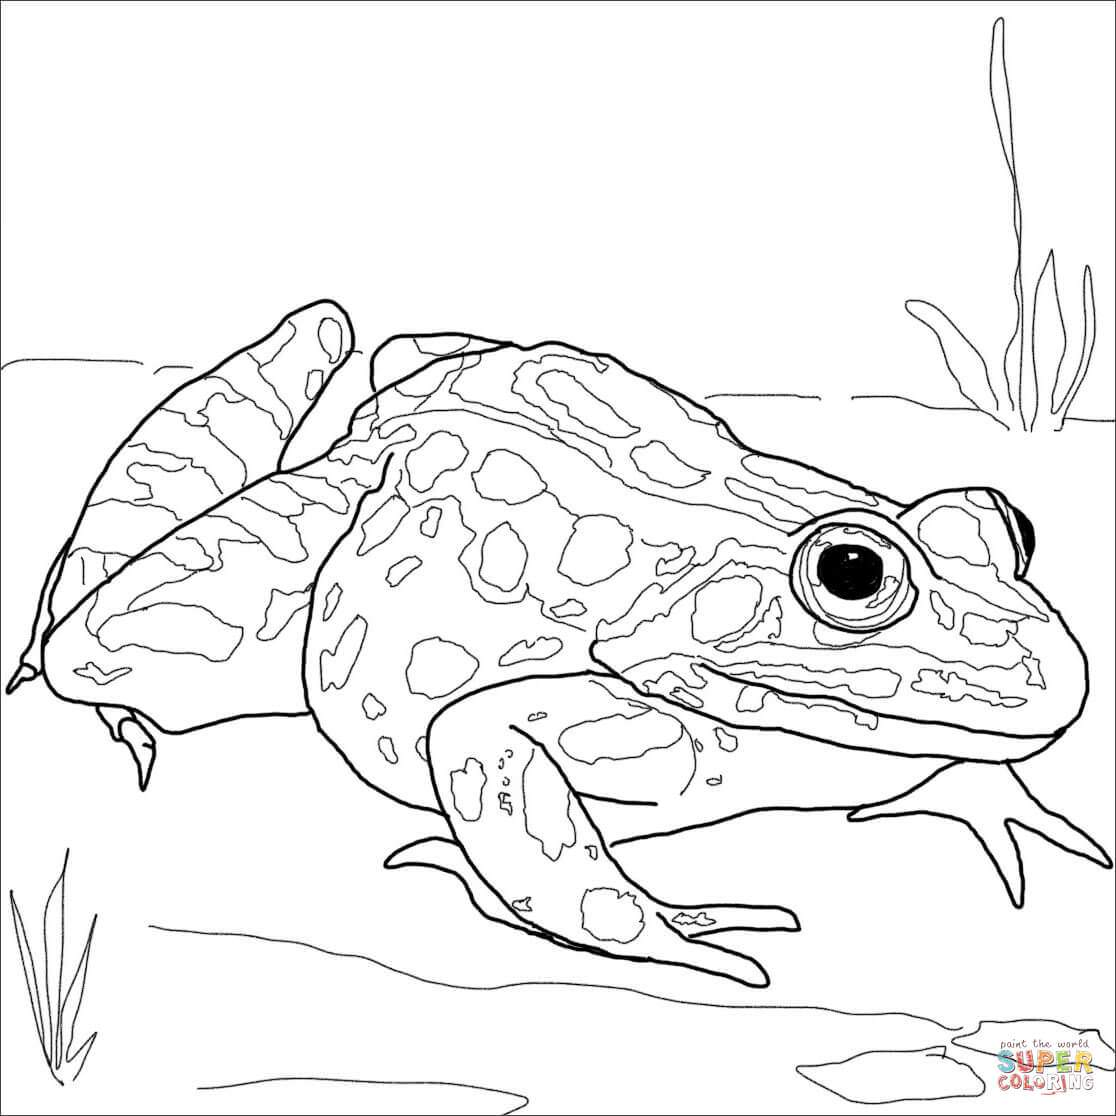 frog face coloring page frog mask coloring page woo jr kids activities page face coloring frog